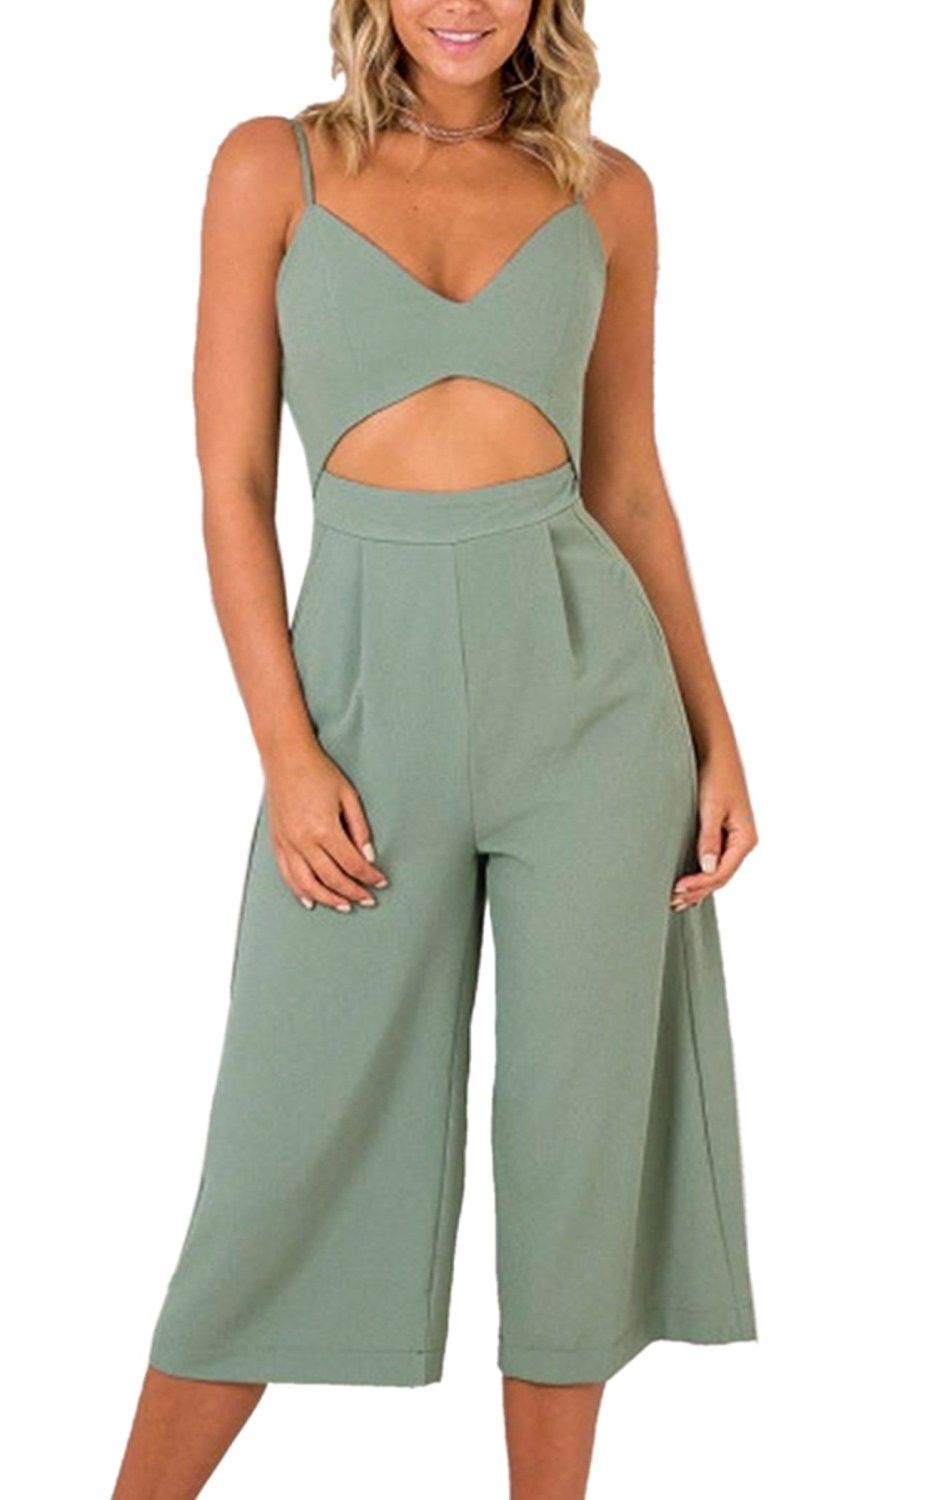 9457cd4deb9 Women s Jumpsuits-V Neck Adjustable Spaghetti Strap Wide Leg Romper Outfit  With Pockets - Grey Green - CT18D9AW3HC